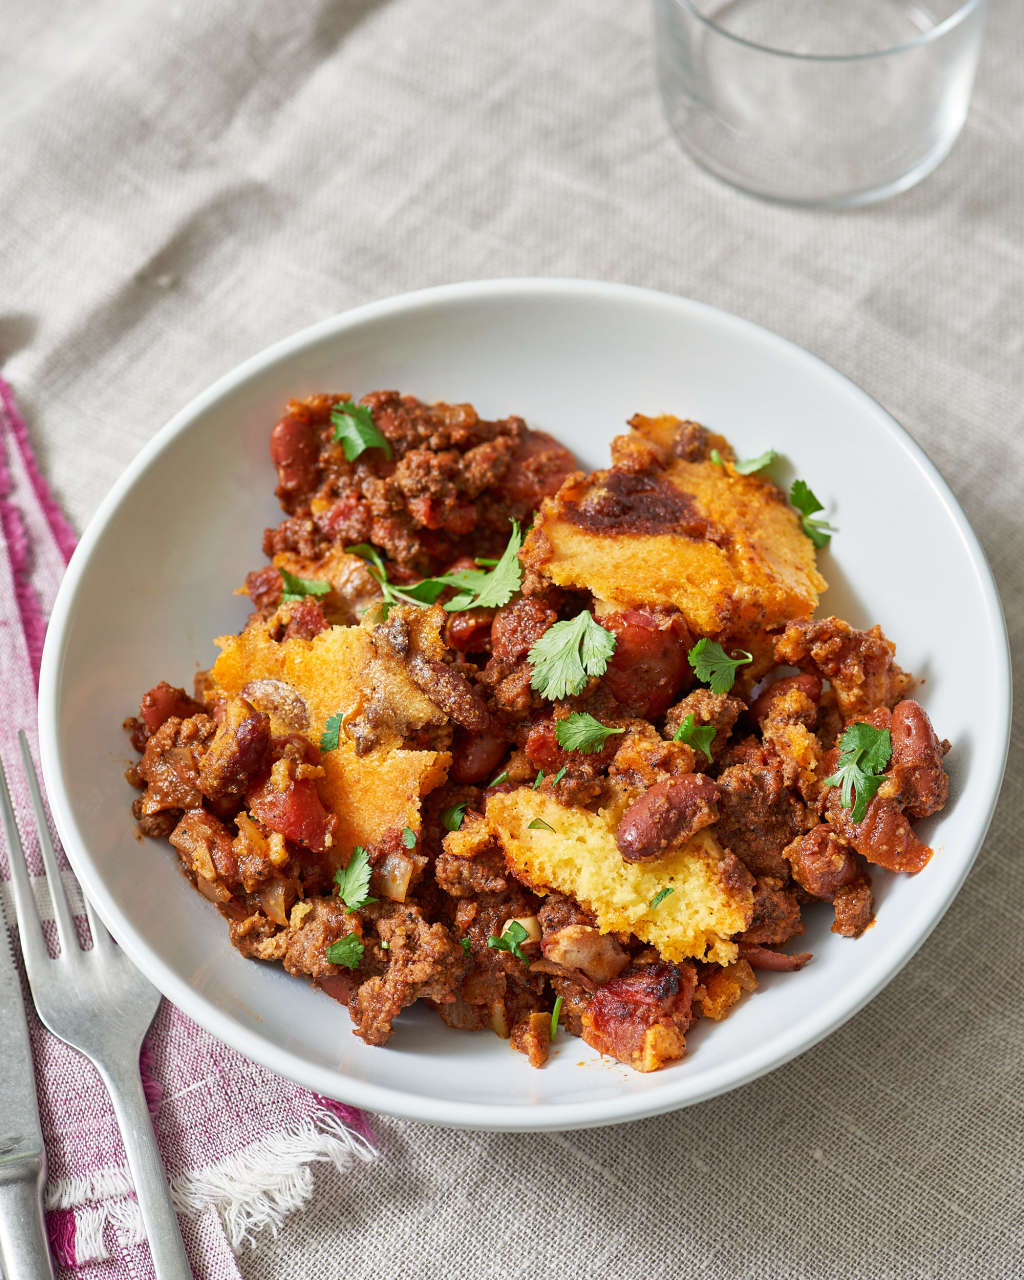 Weeknight Chili and Cornbread, Baked in One Pot at Last